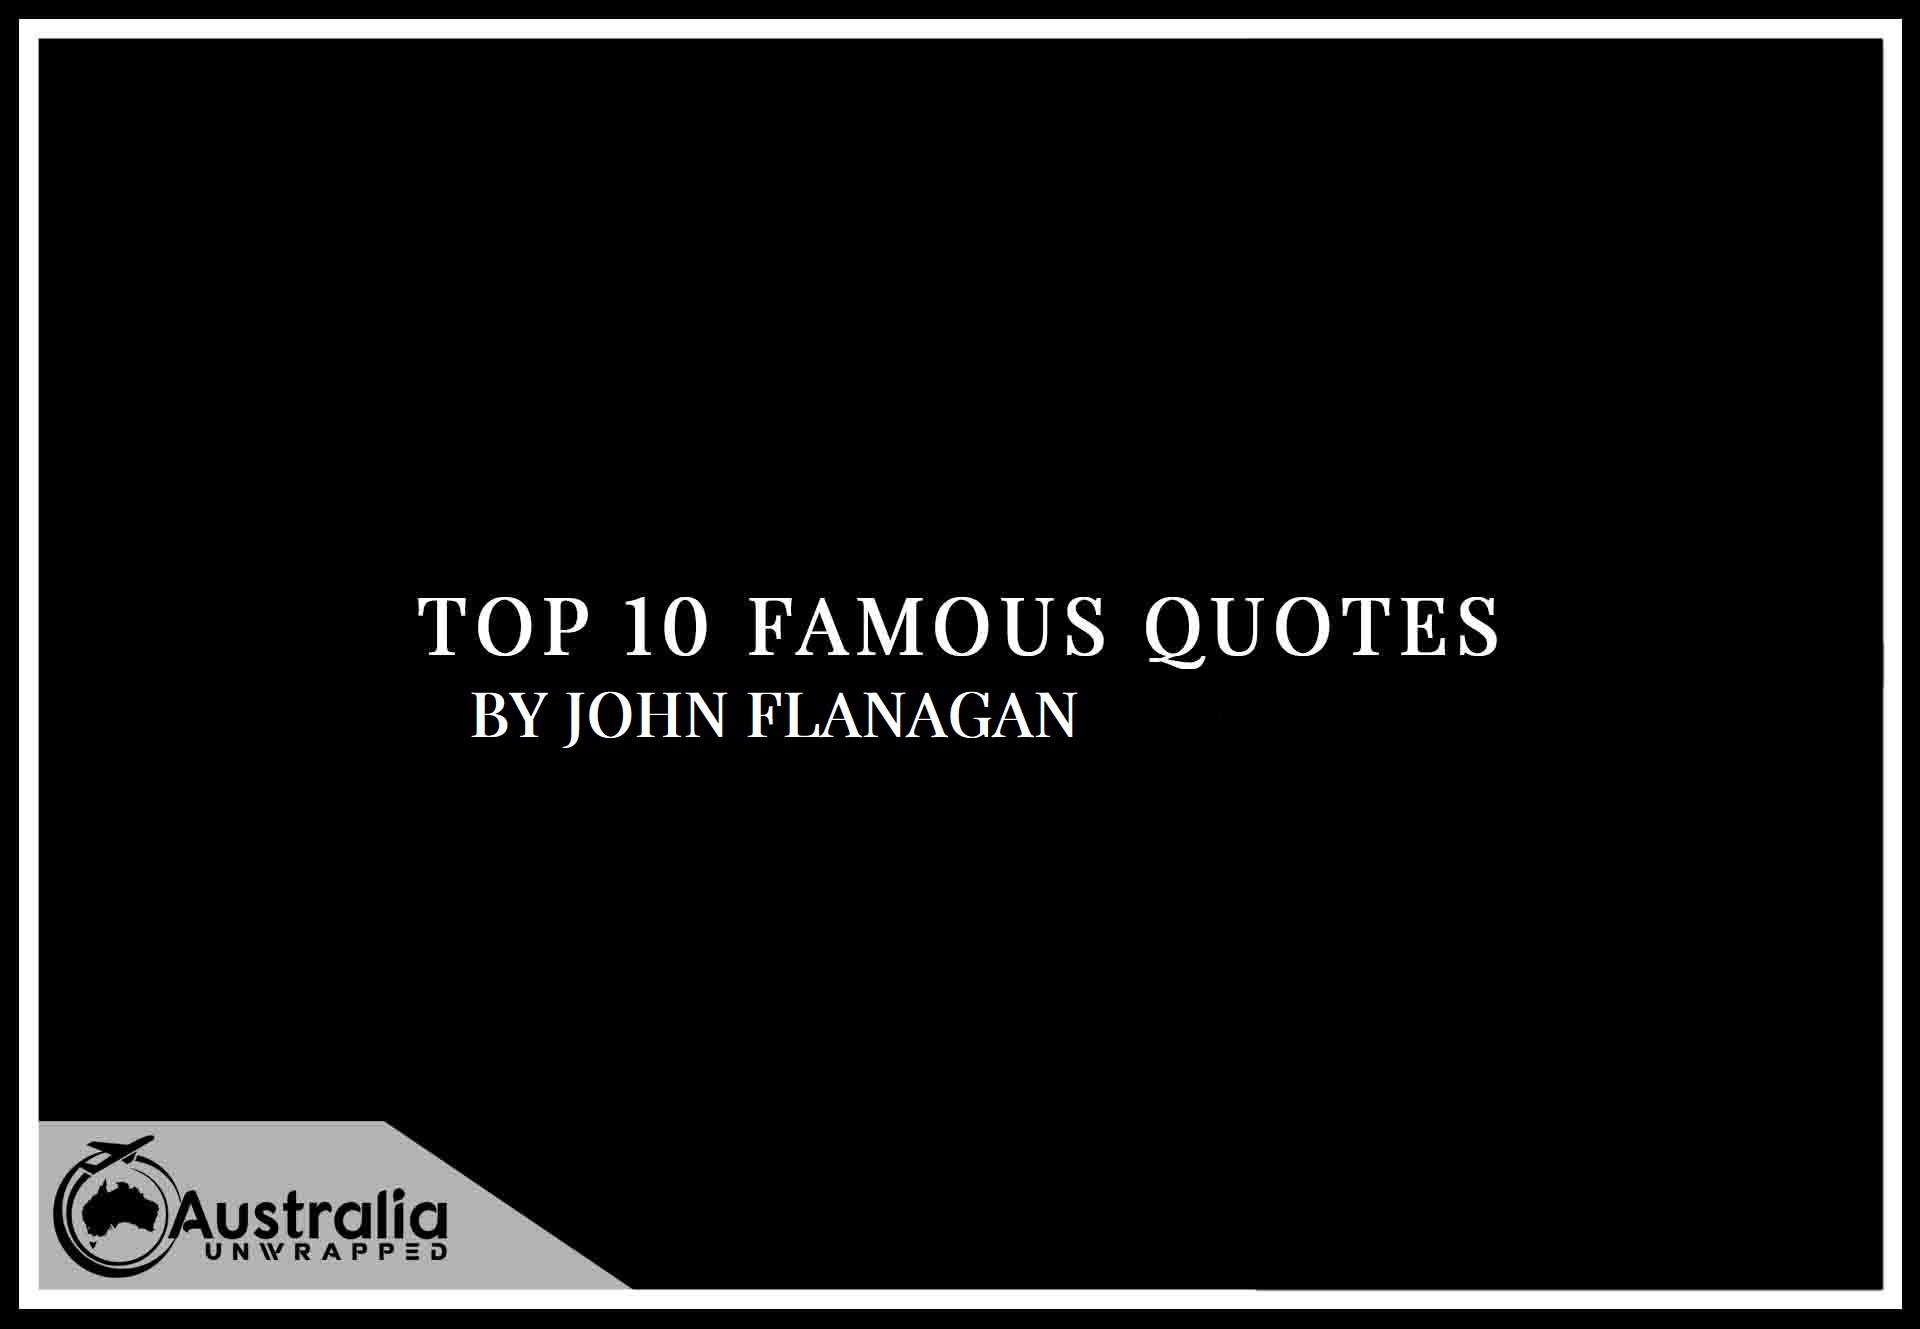 Top 10 Famous Quotes by Author John Flanagan